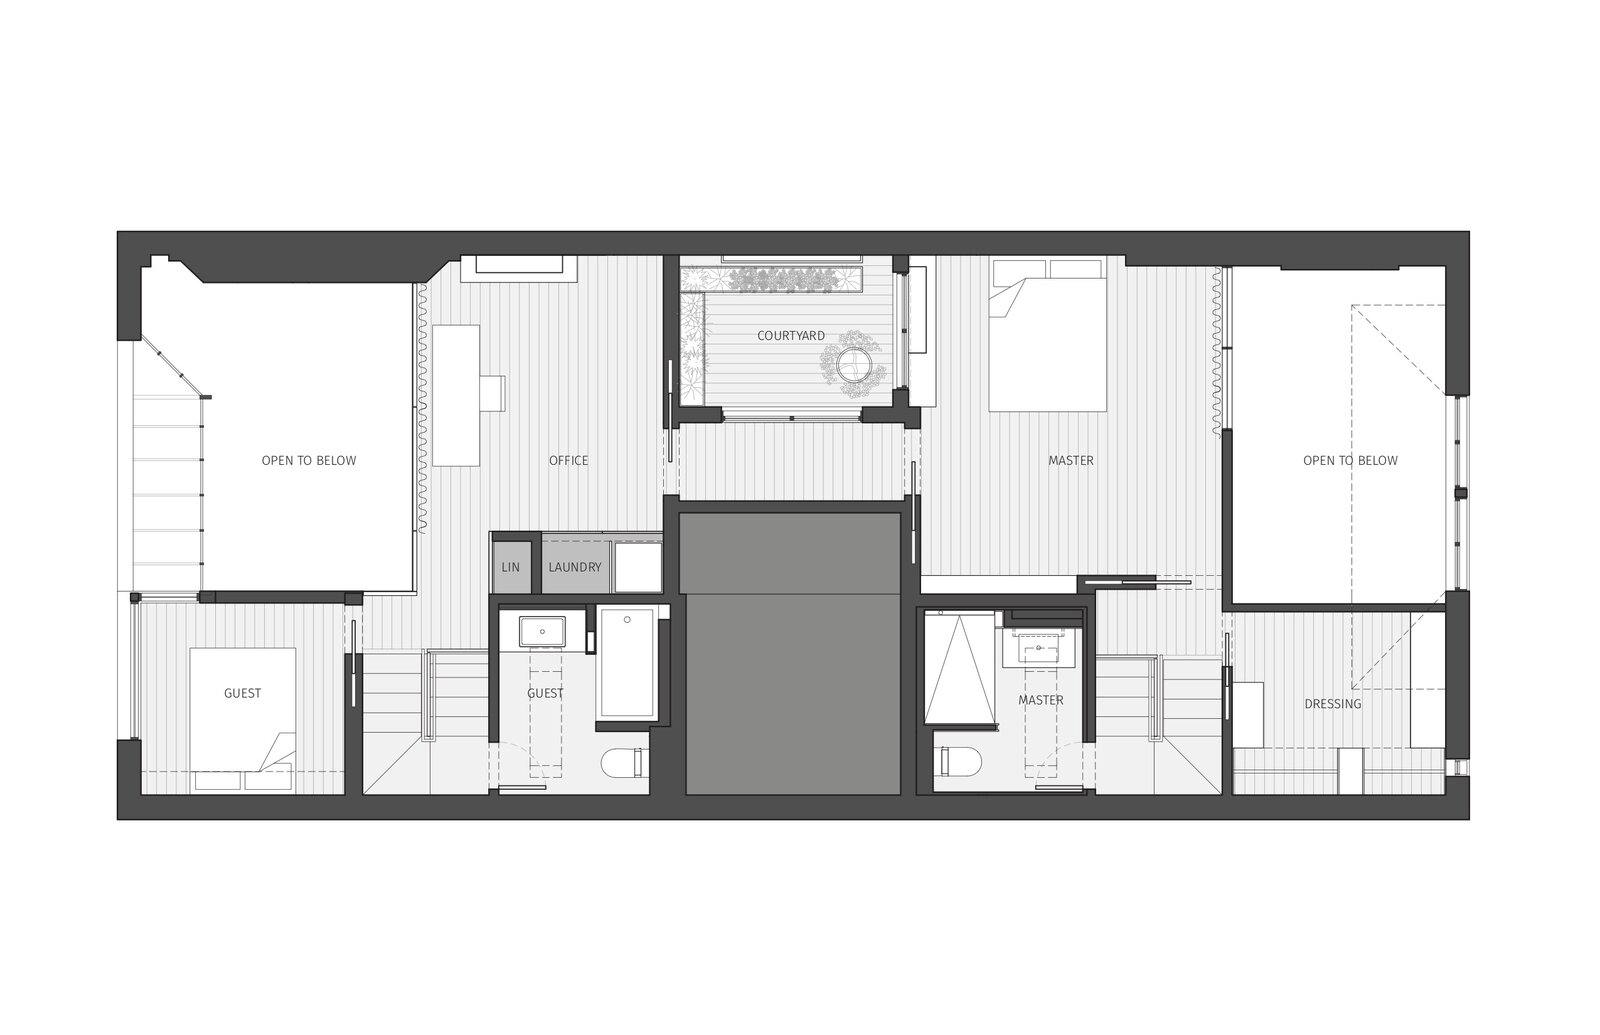 Mezzanine floor plan.  Photo 28 of 28 in Before & After: A TV Writer's Chelsea Loft Is Saved From a Hodgepodge of Outdated Remodels